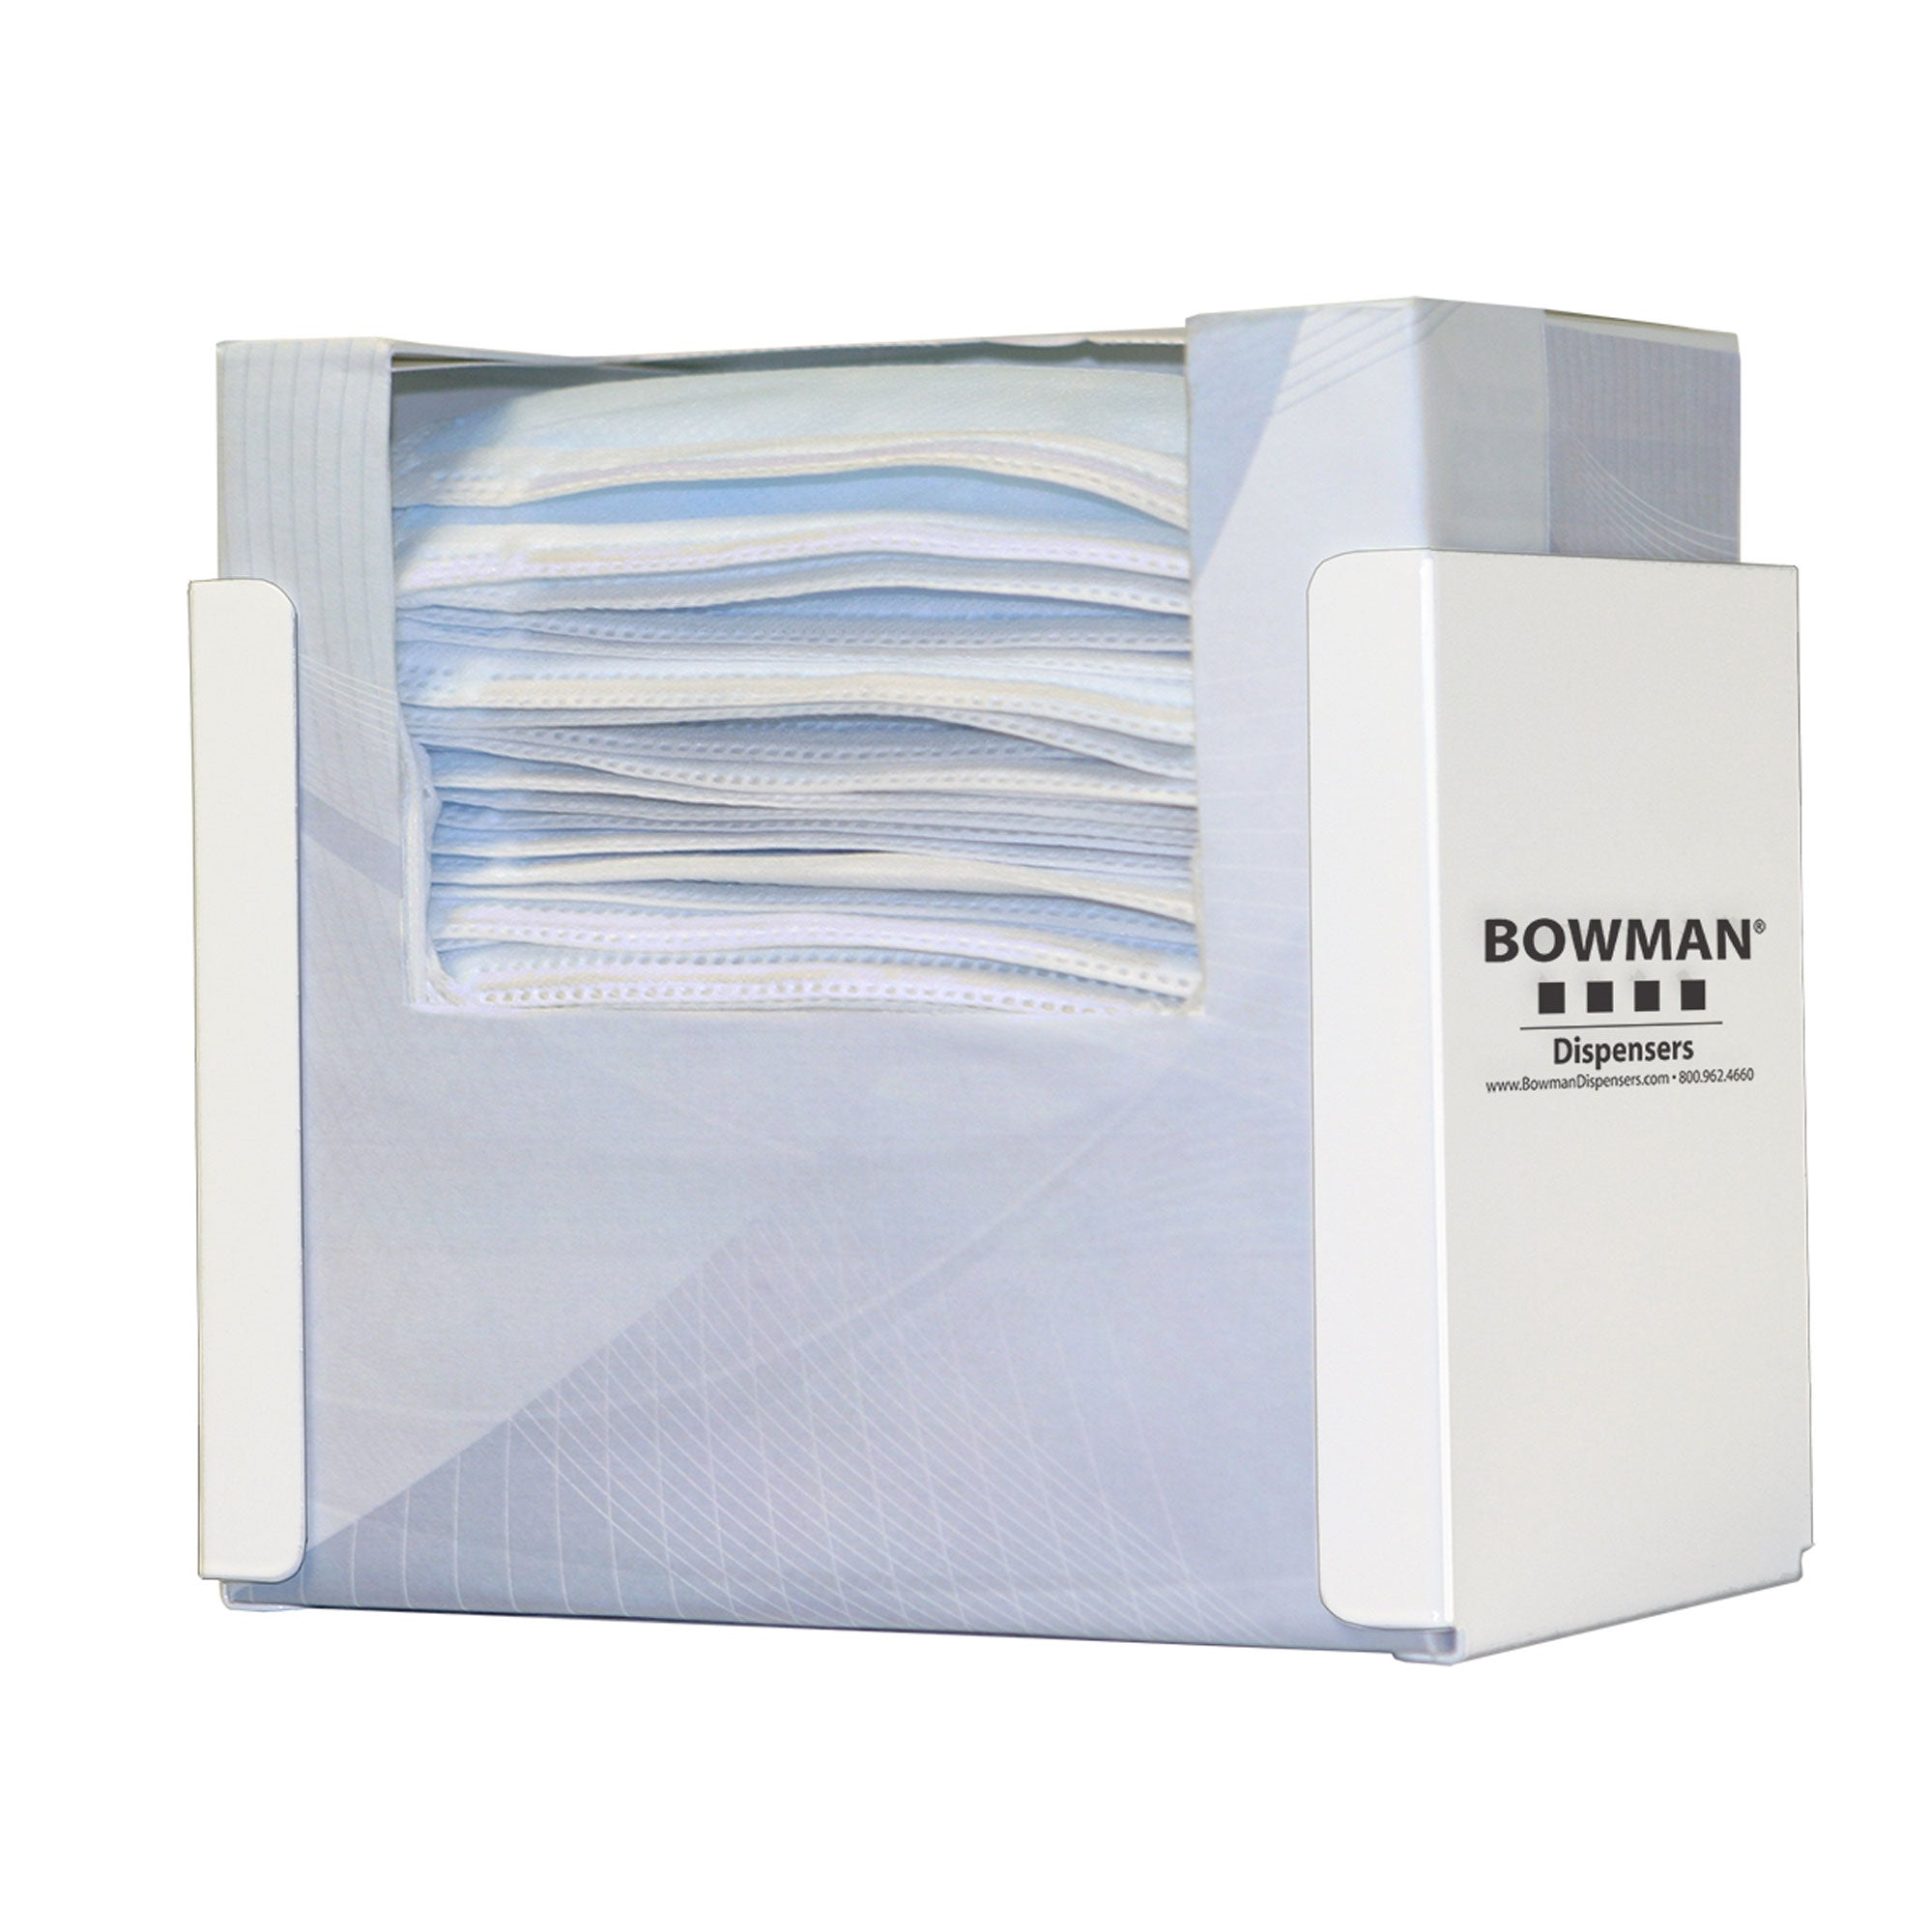 Bowman White Stainless Steel Single Mask Dispenser